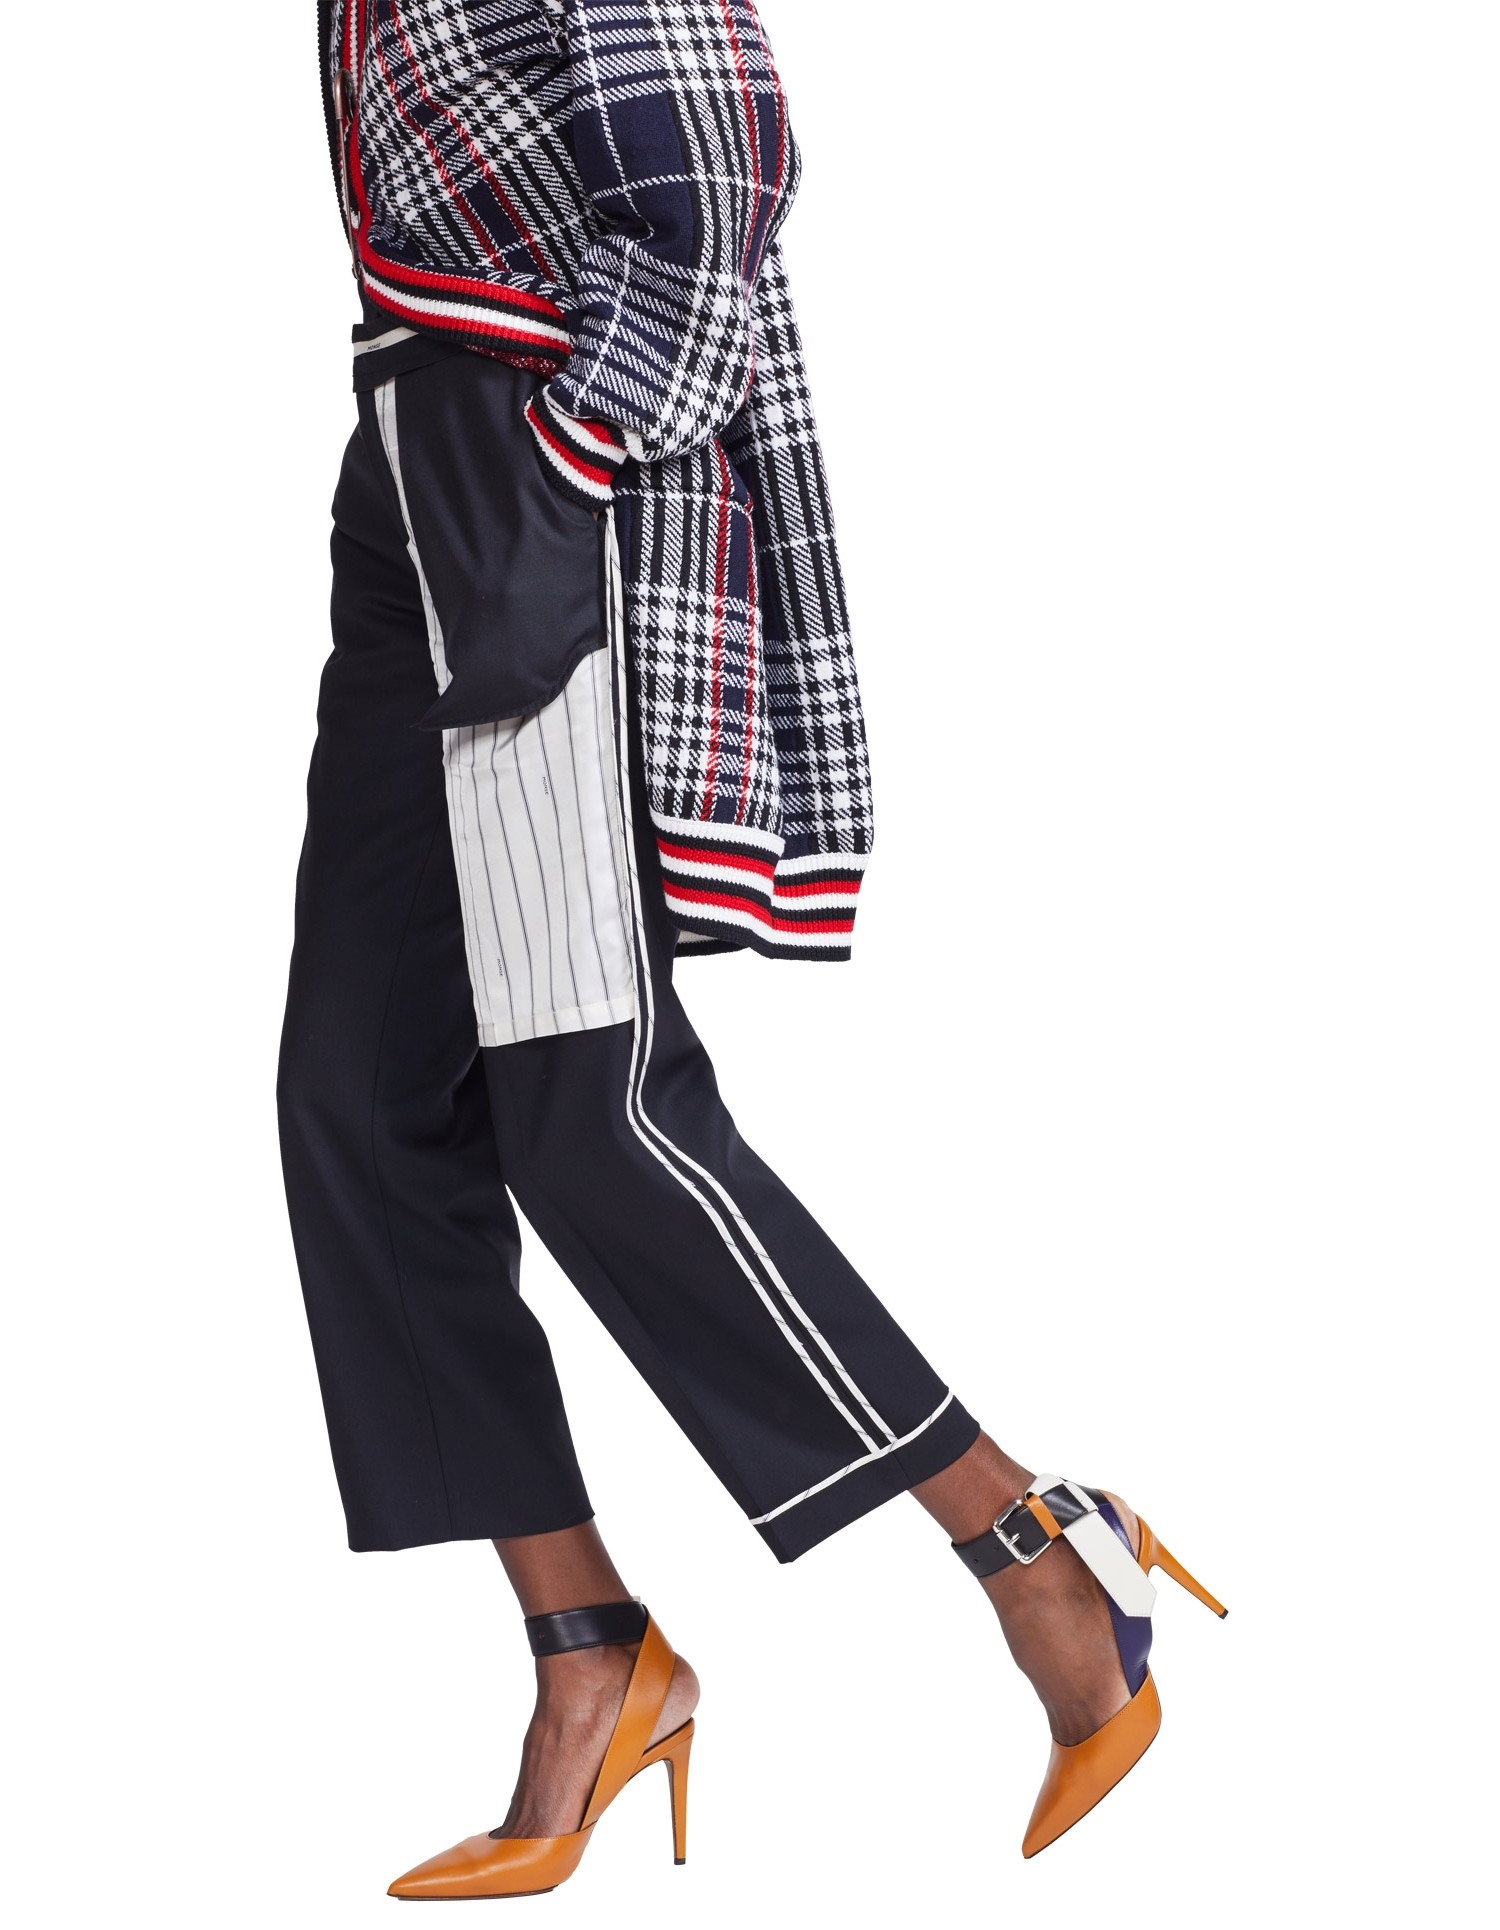 MONSE Inside Out Pinstripe Pocket Pant on Model Side View